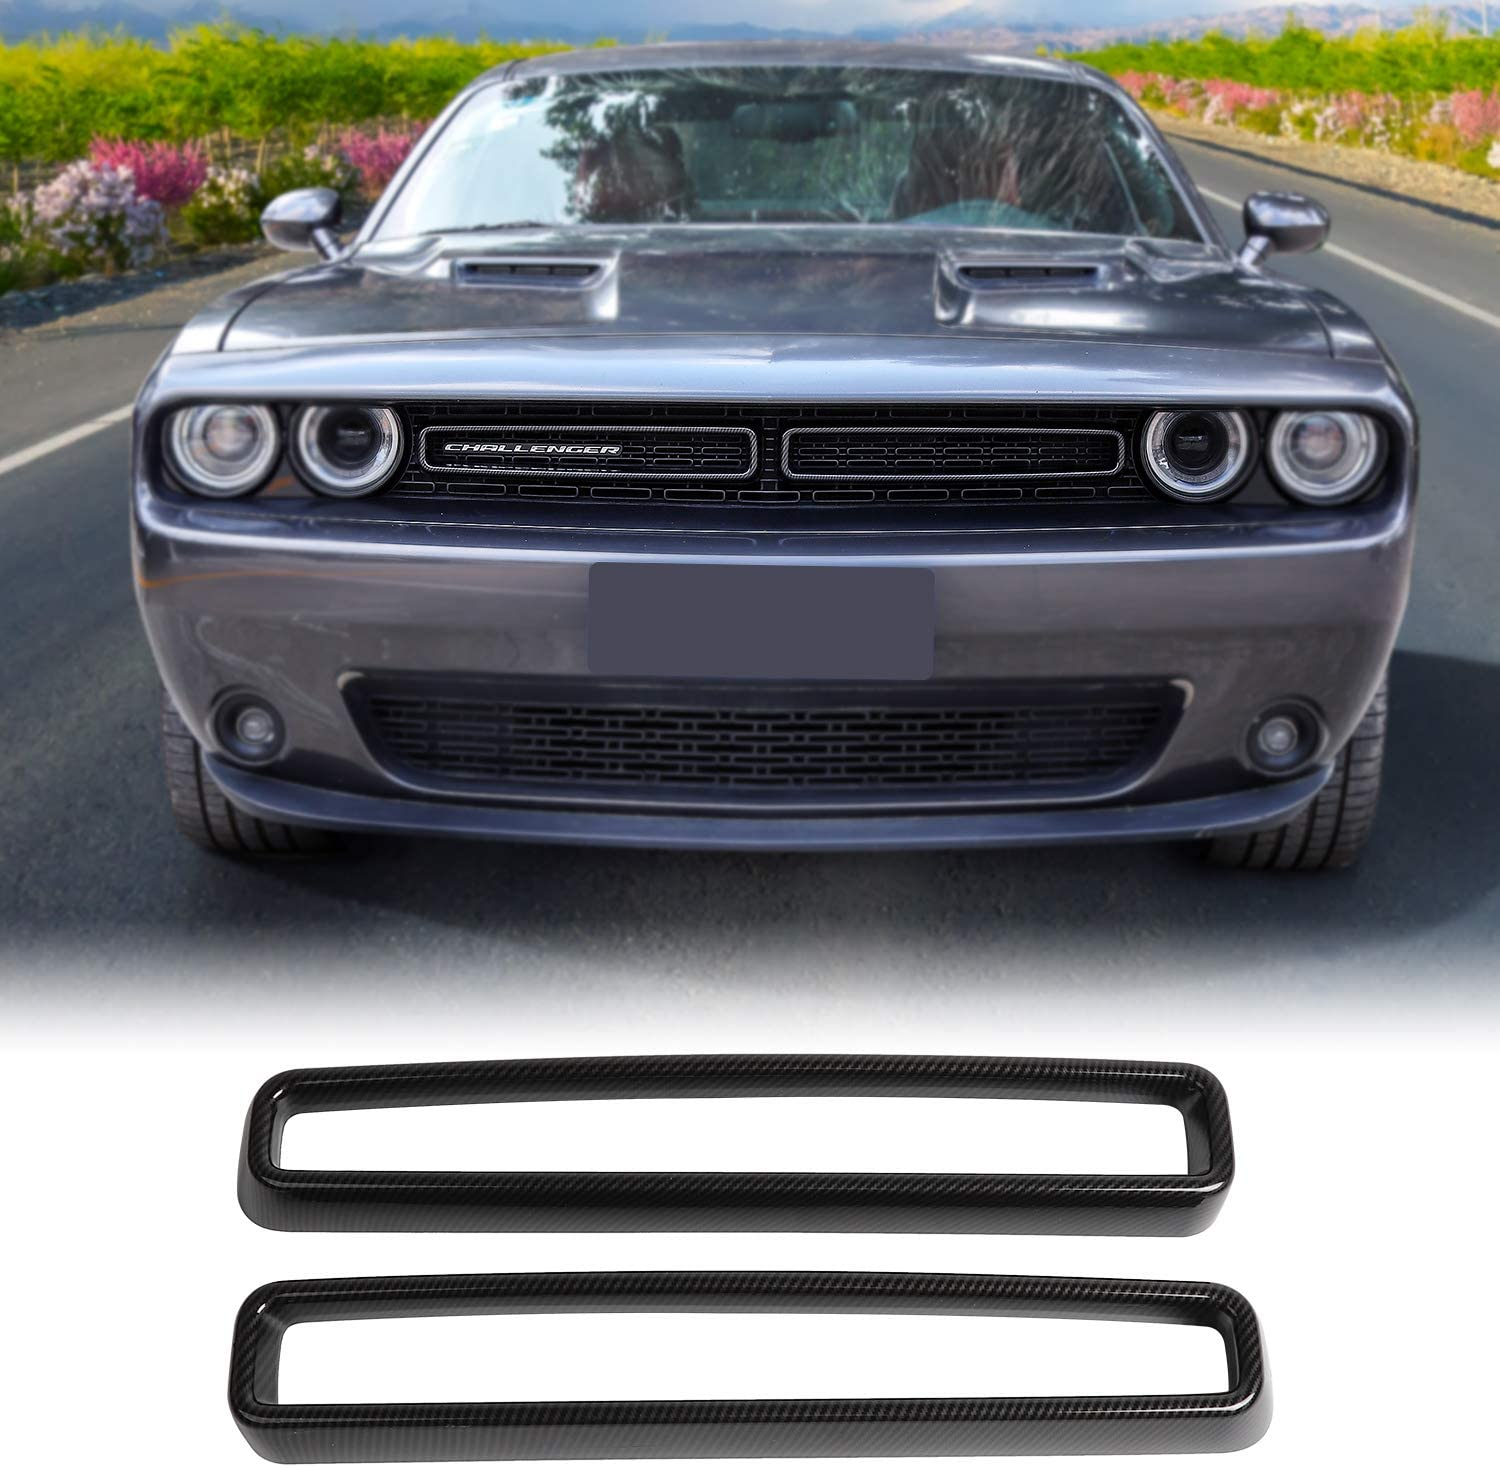 amazon com jecar front grill inserts guards grille insert cover trim challenger accessories for dodge challenger 2015 2019 carbon fiber pattern automotive jecar front grill inserts guards grille insert cover trim challenger accessories for dodge challenger 2015 2019 carbon fiber pattern